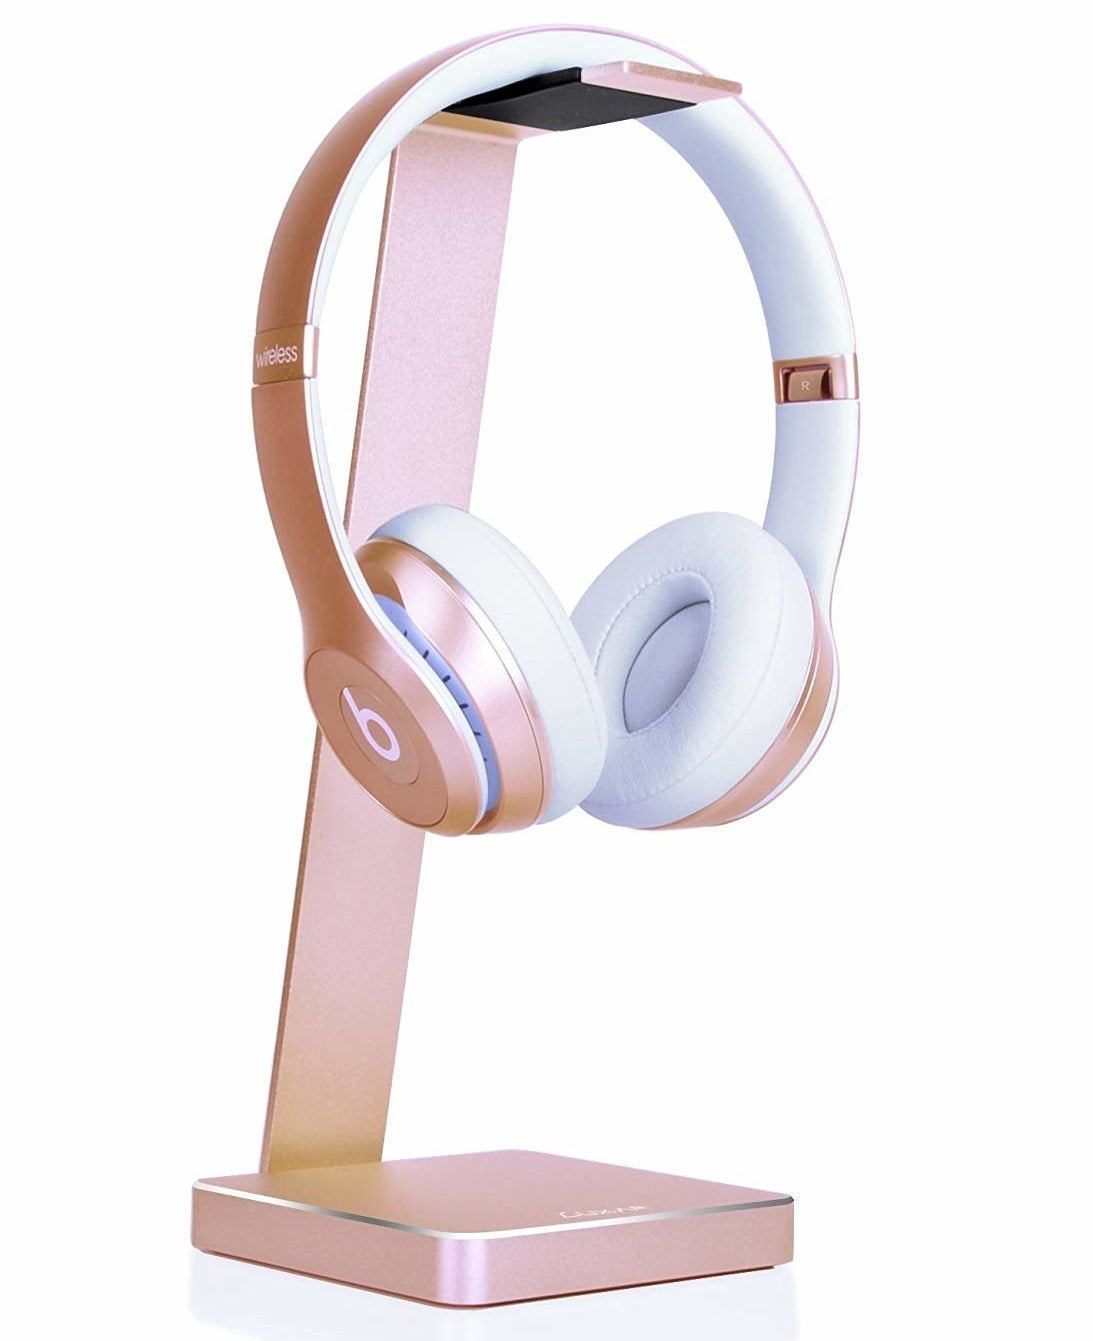 rose gold headphones stand